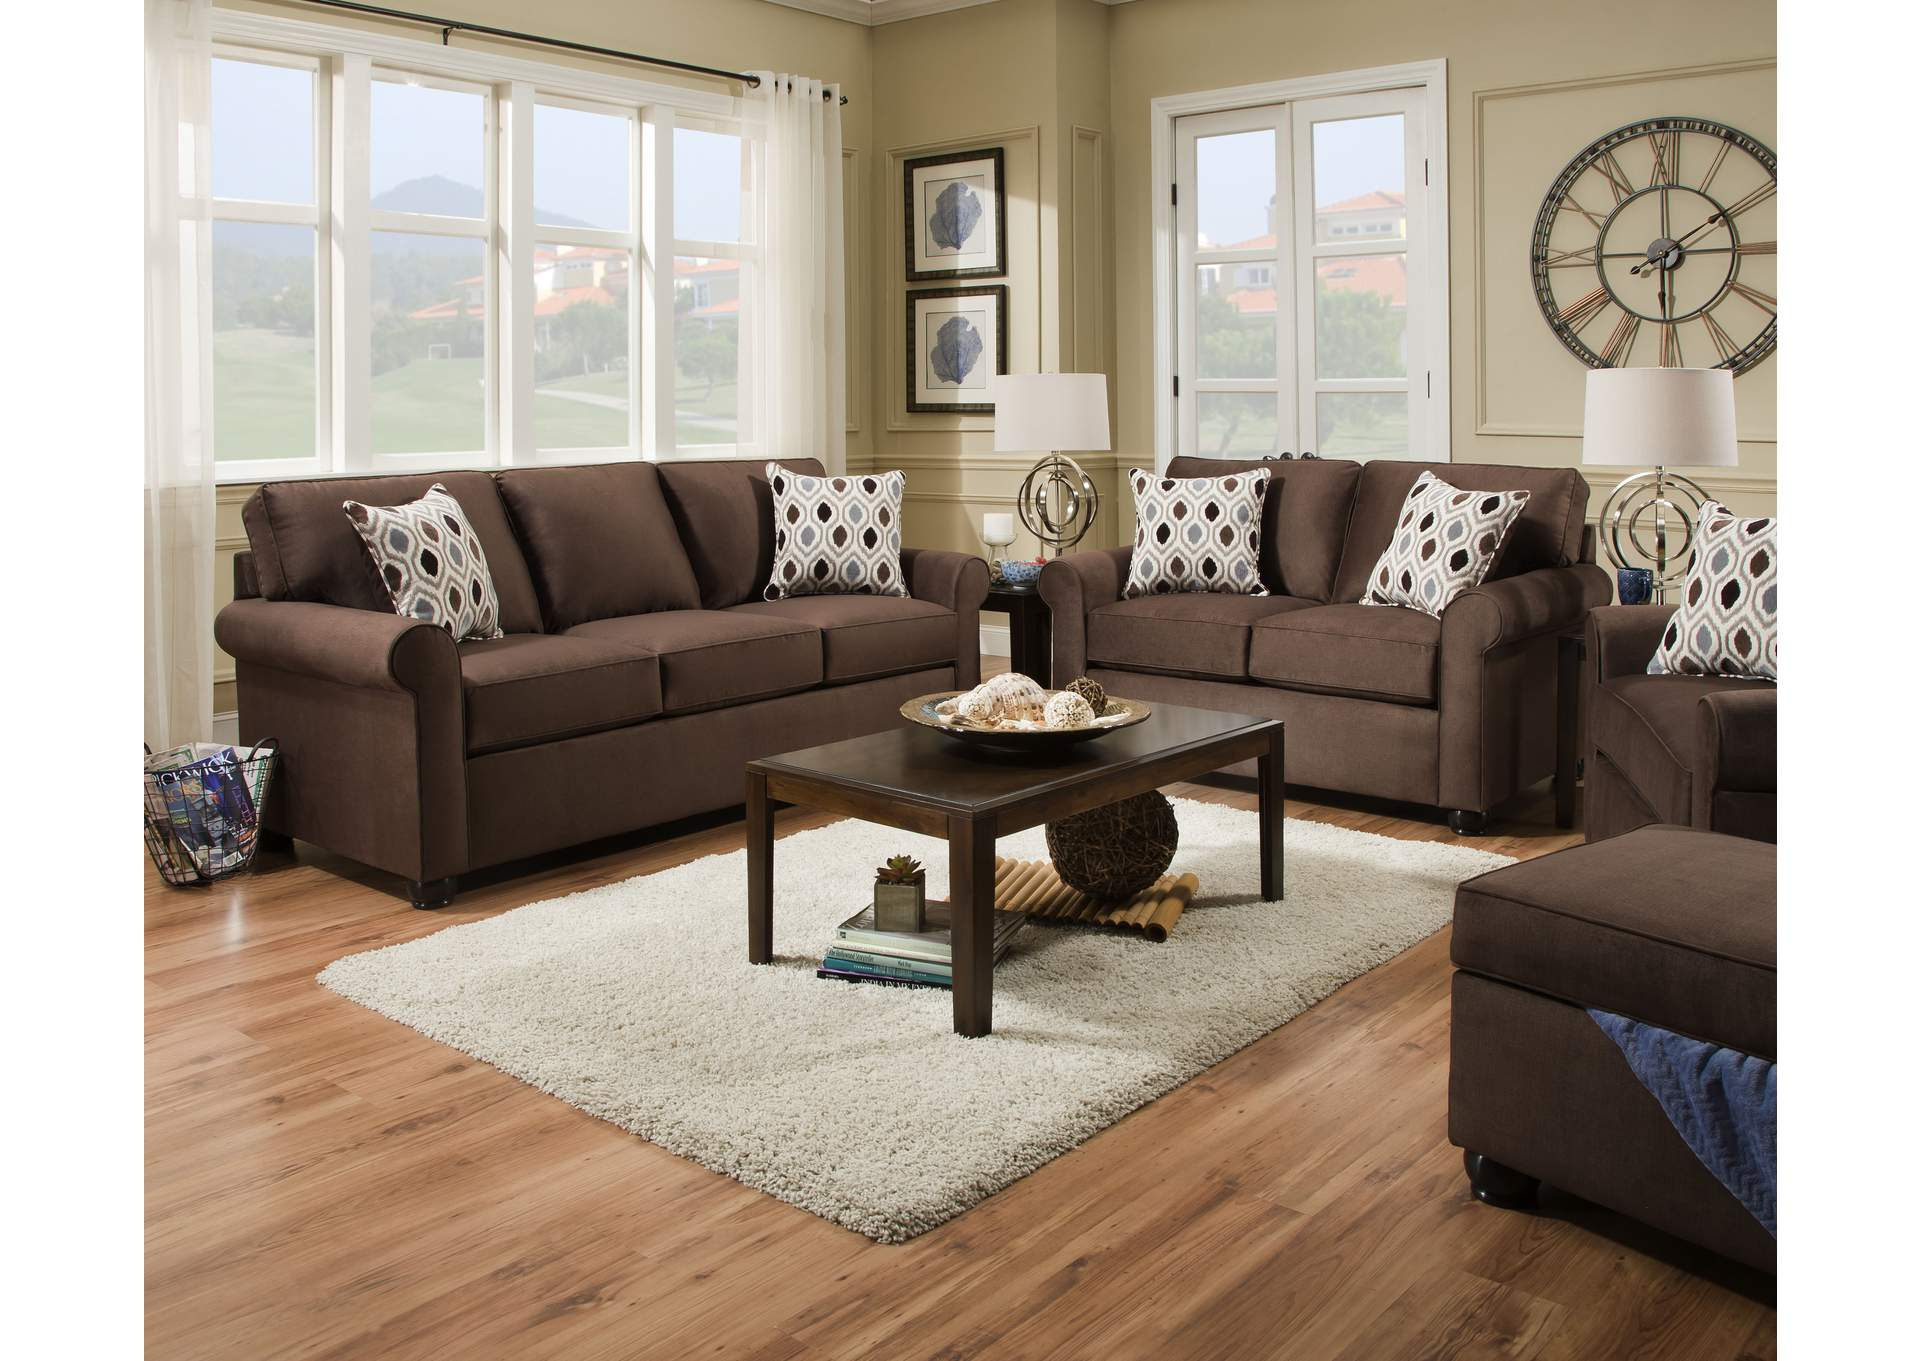 1530 Sofa - Jojo Chocolate / Preston Mocha,Lane Furniture